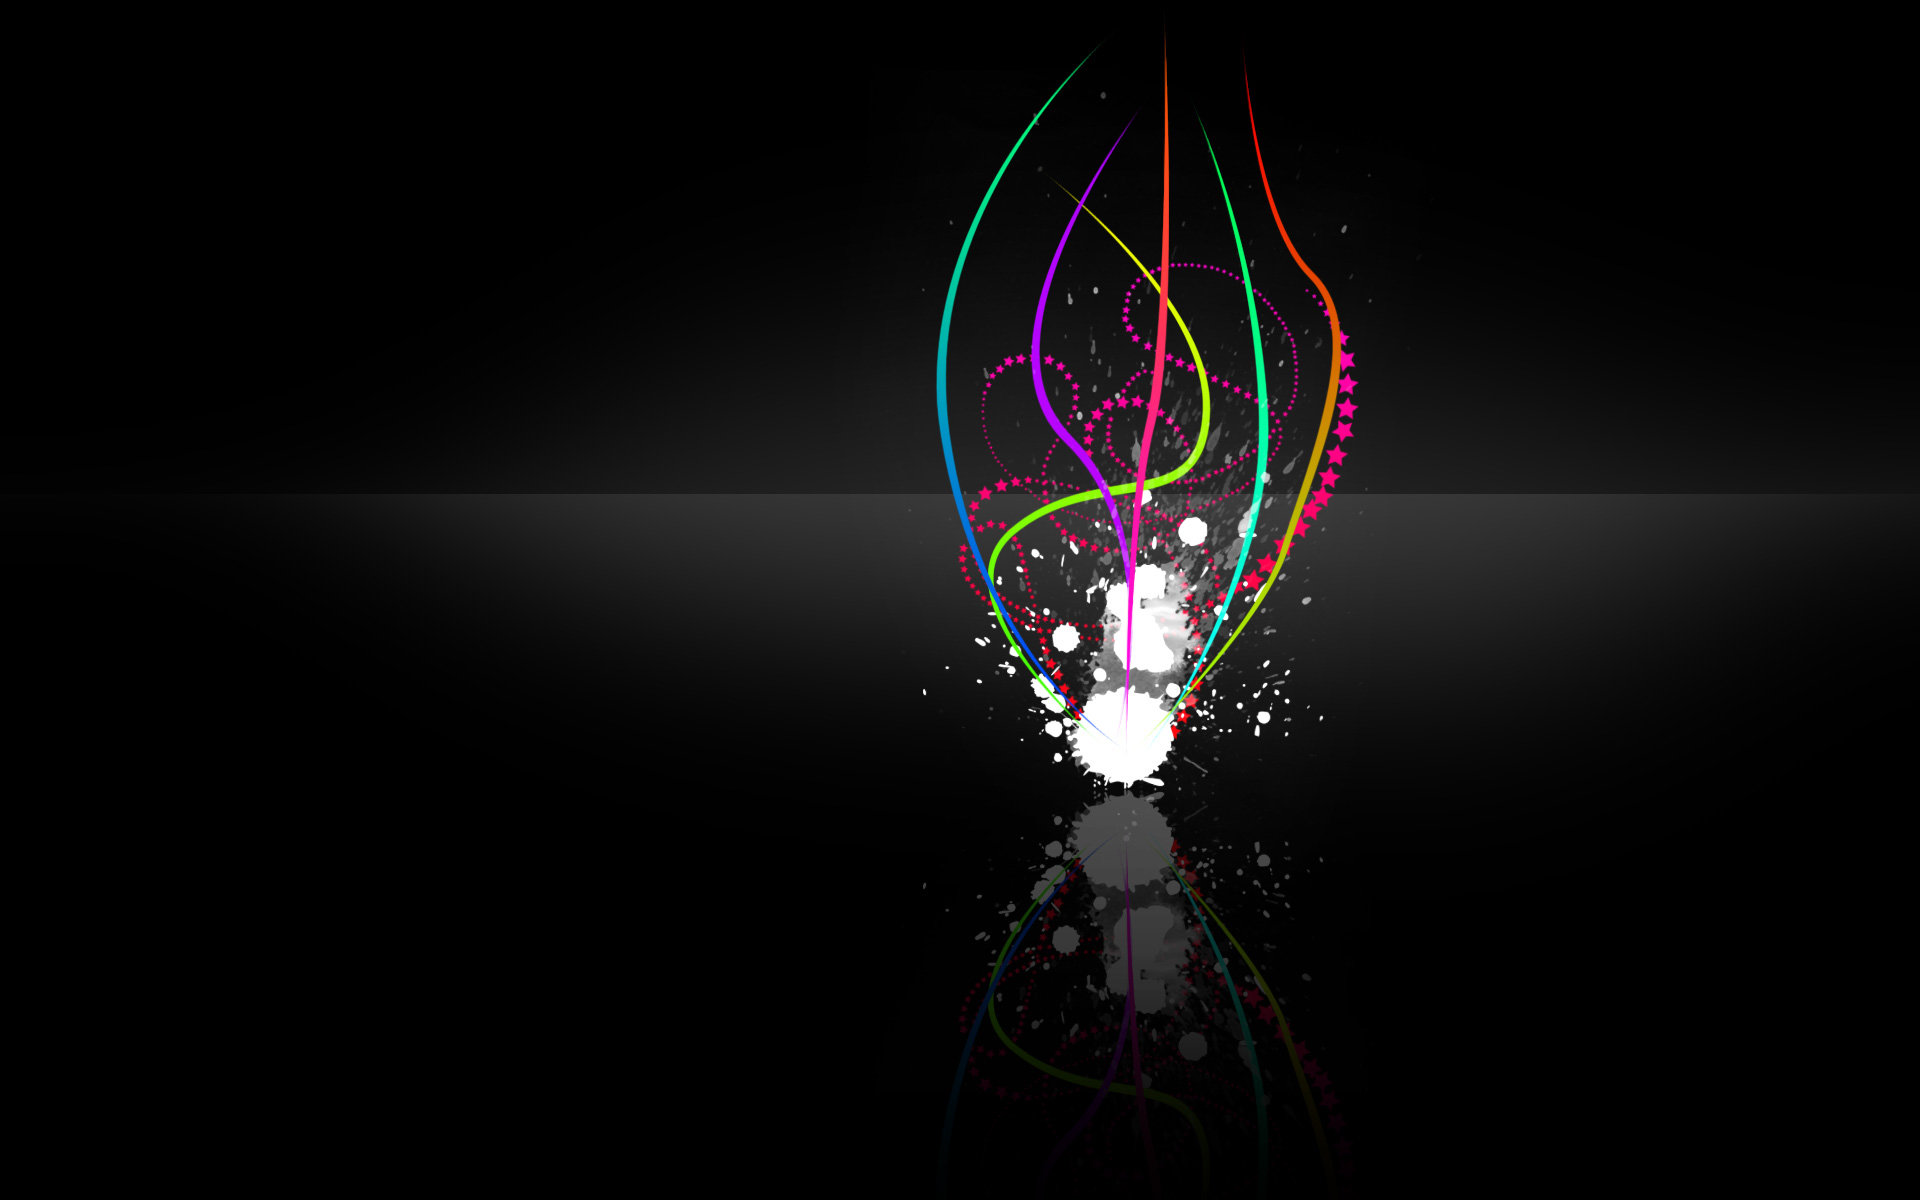 Free download Vector background ID:121803 hd 1920x1200 for PC